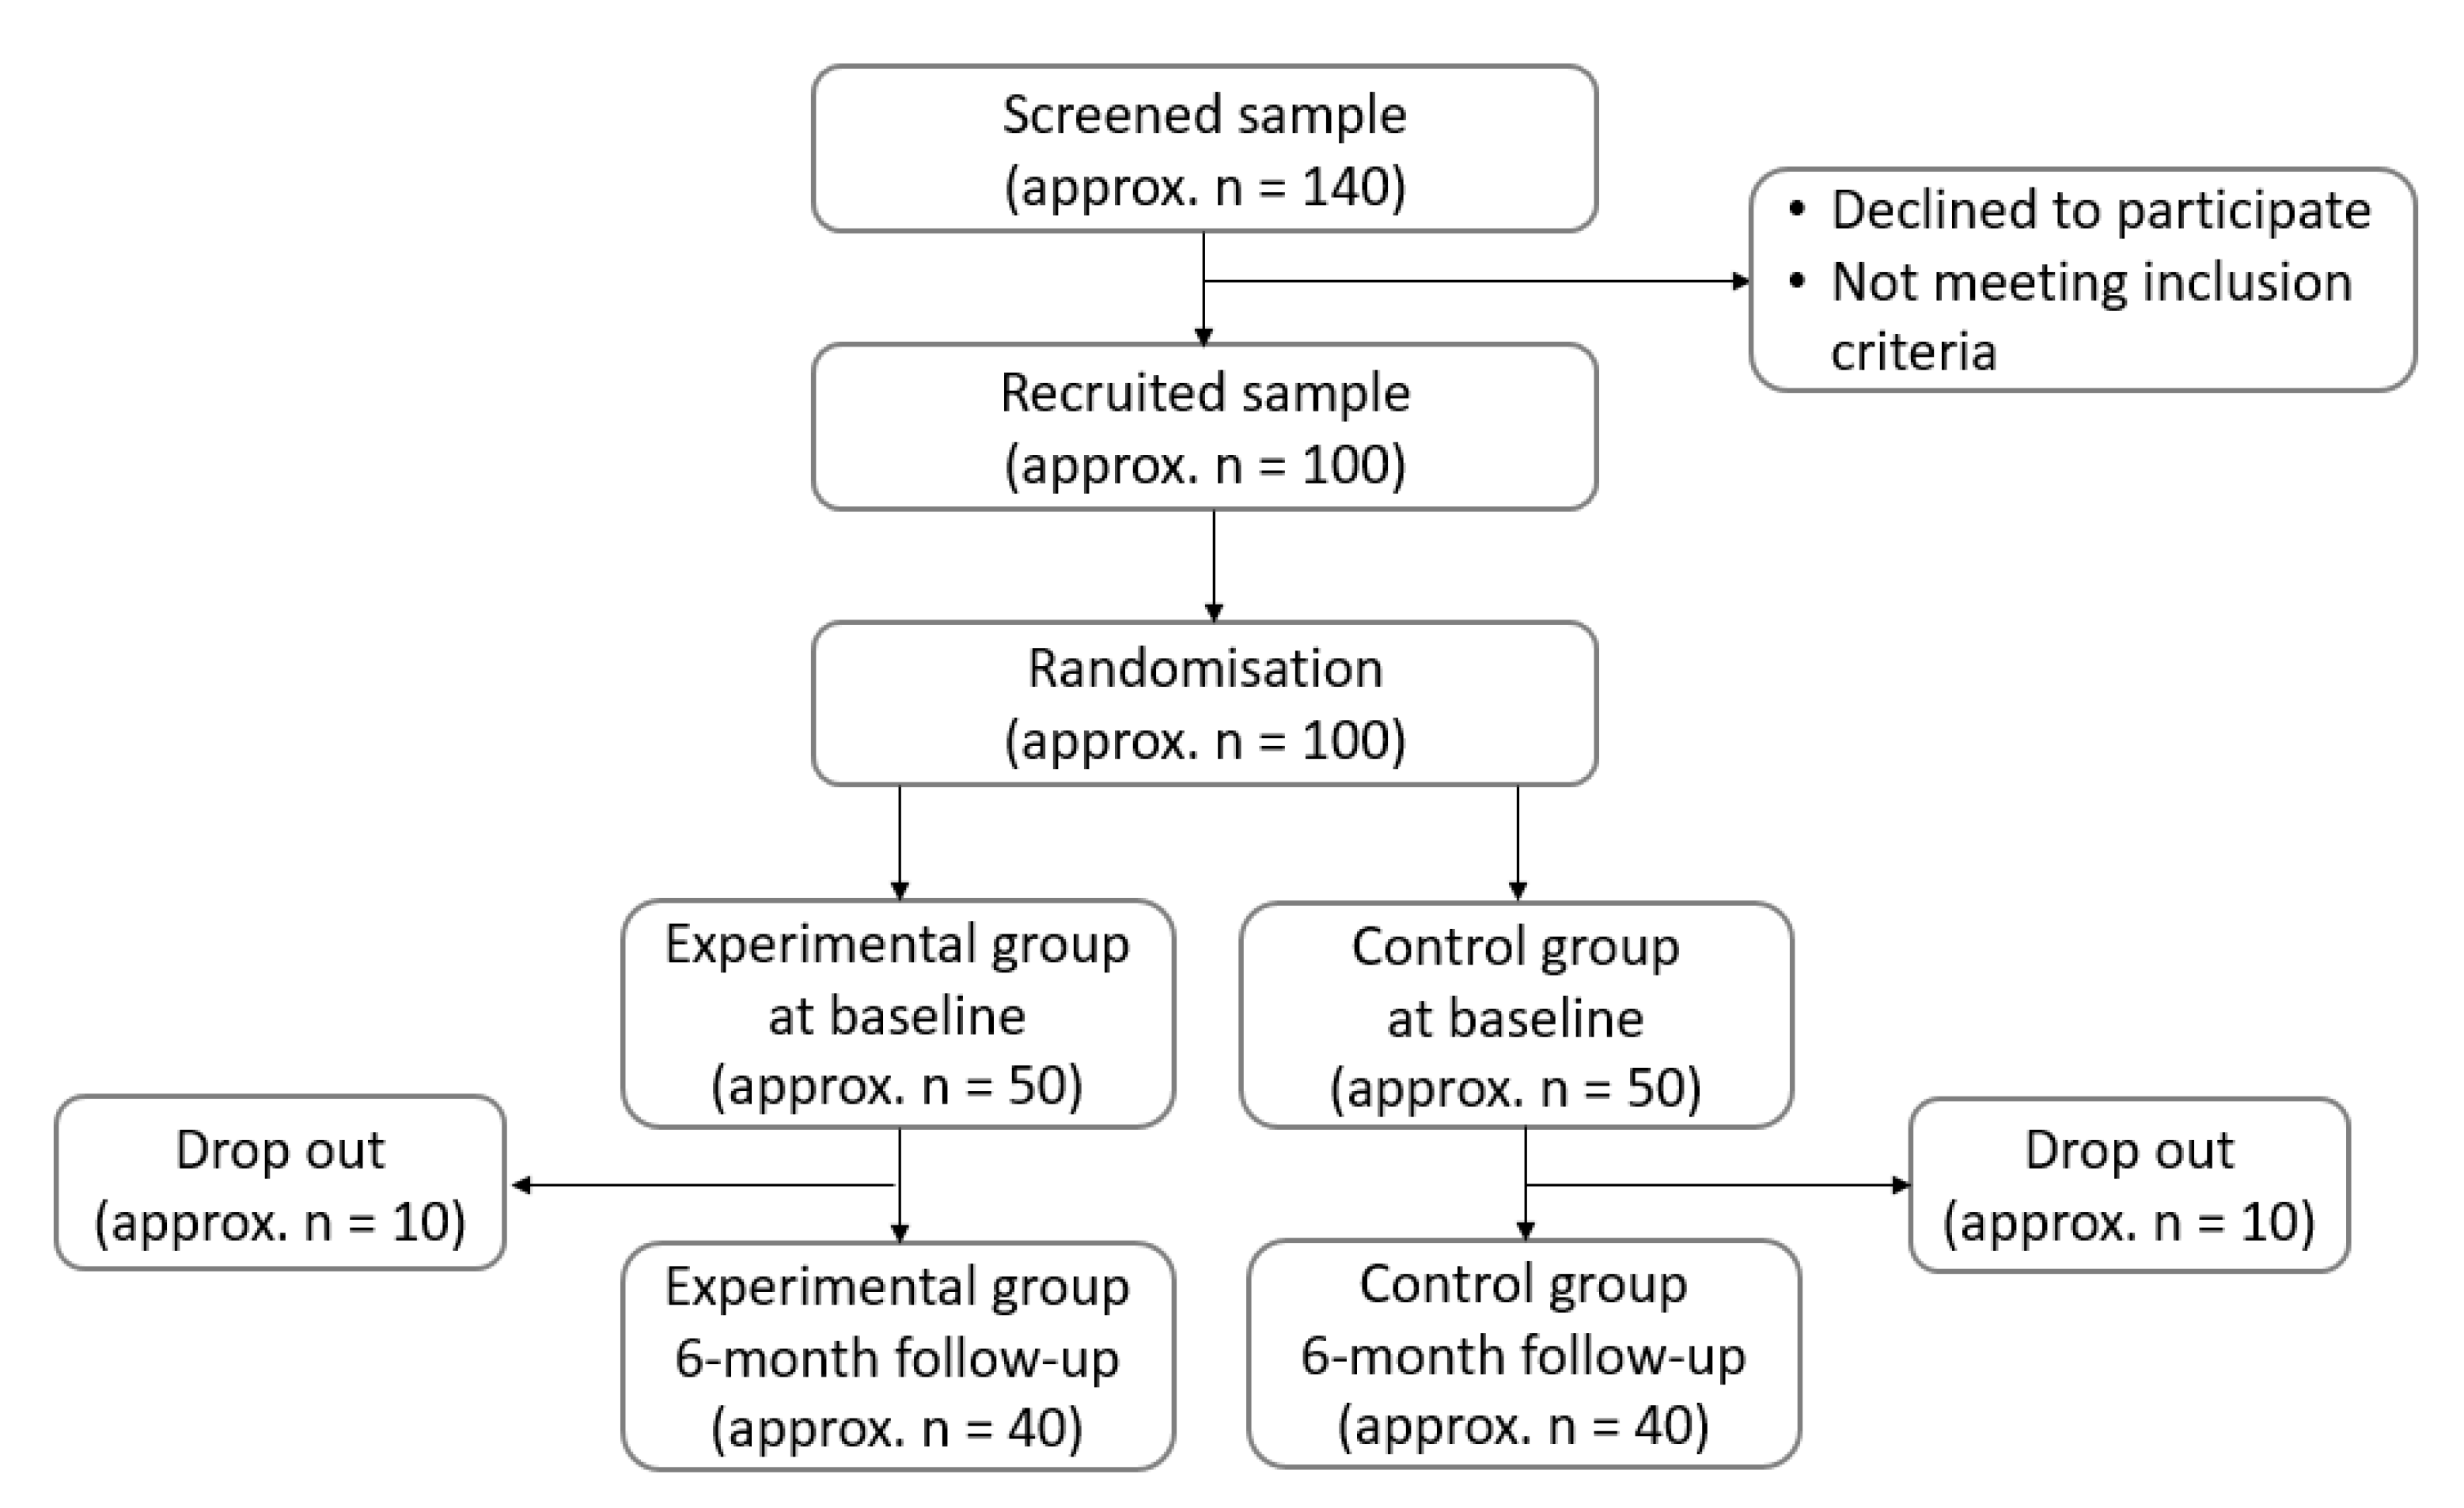 Ijerph Free Full Text Evaluation Of Qualitative Dietary Protocol Diet4hashi Application In Dietary Counseling In Hashimoto Thyroiditis Study Protocol Of A Randomized Controlled Trial Html